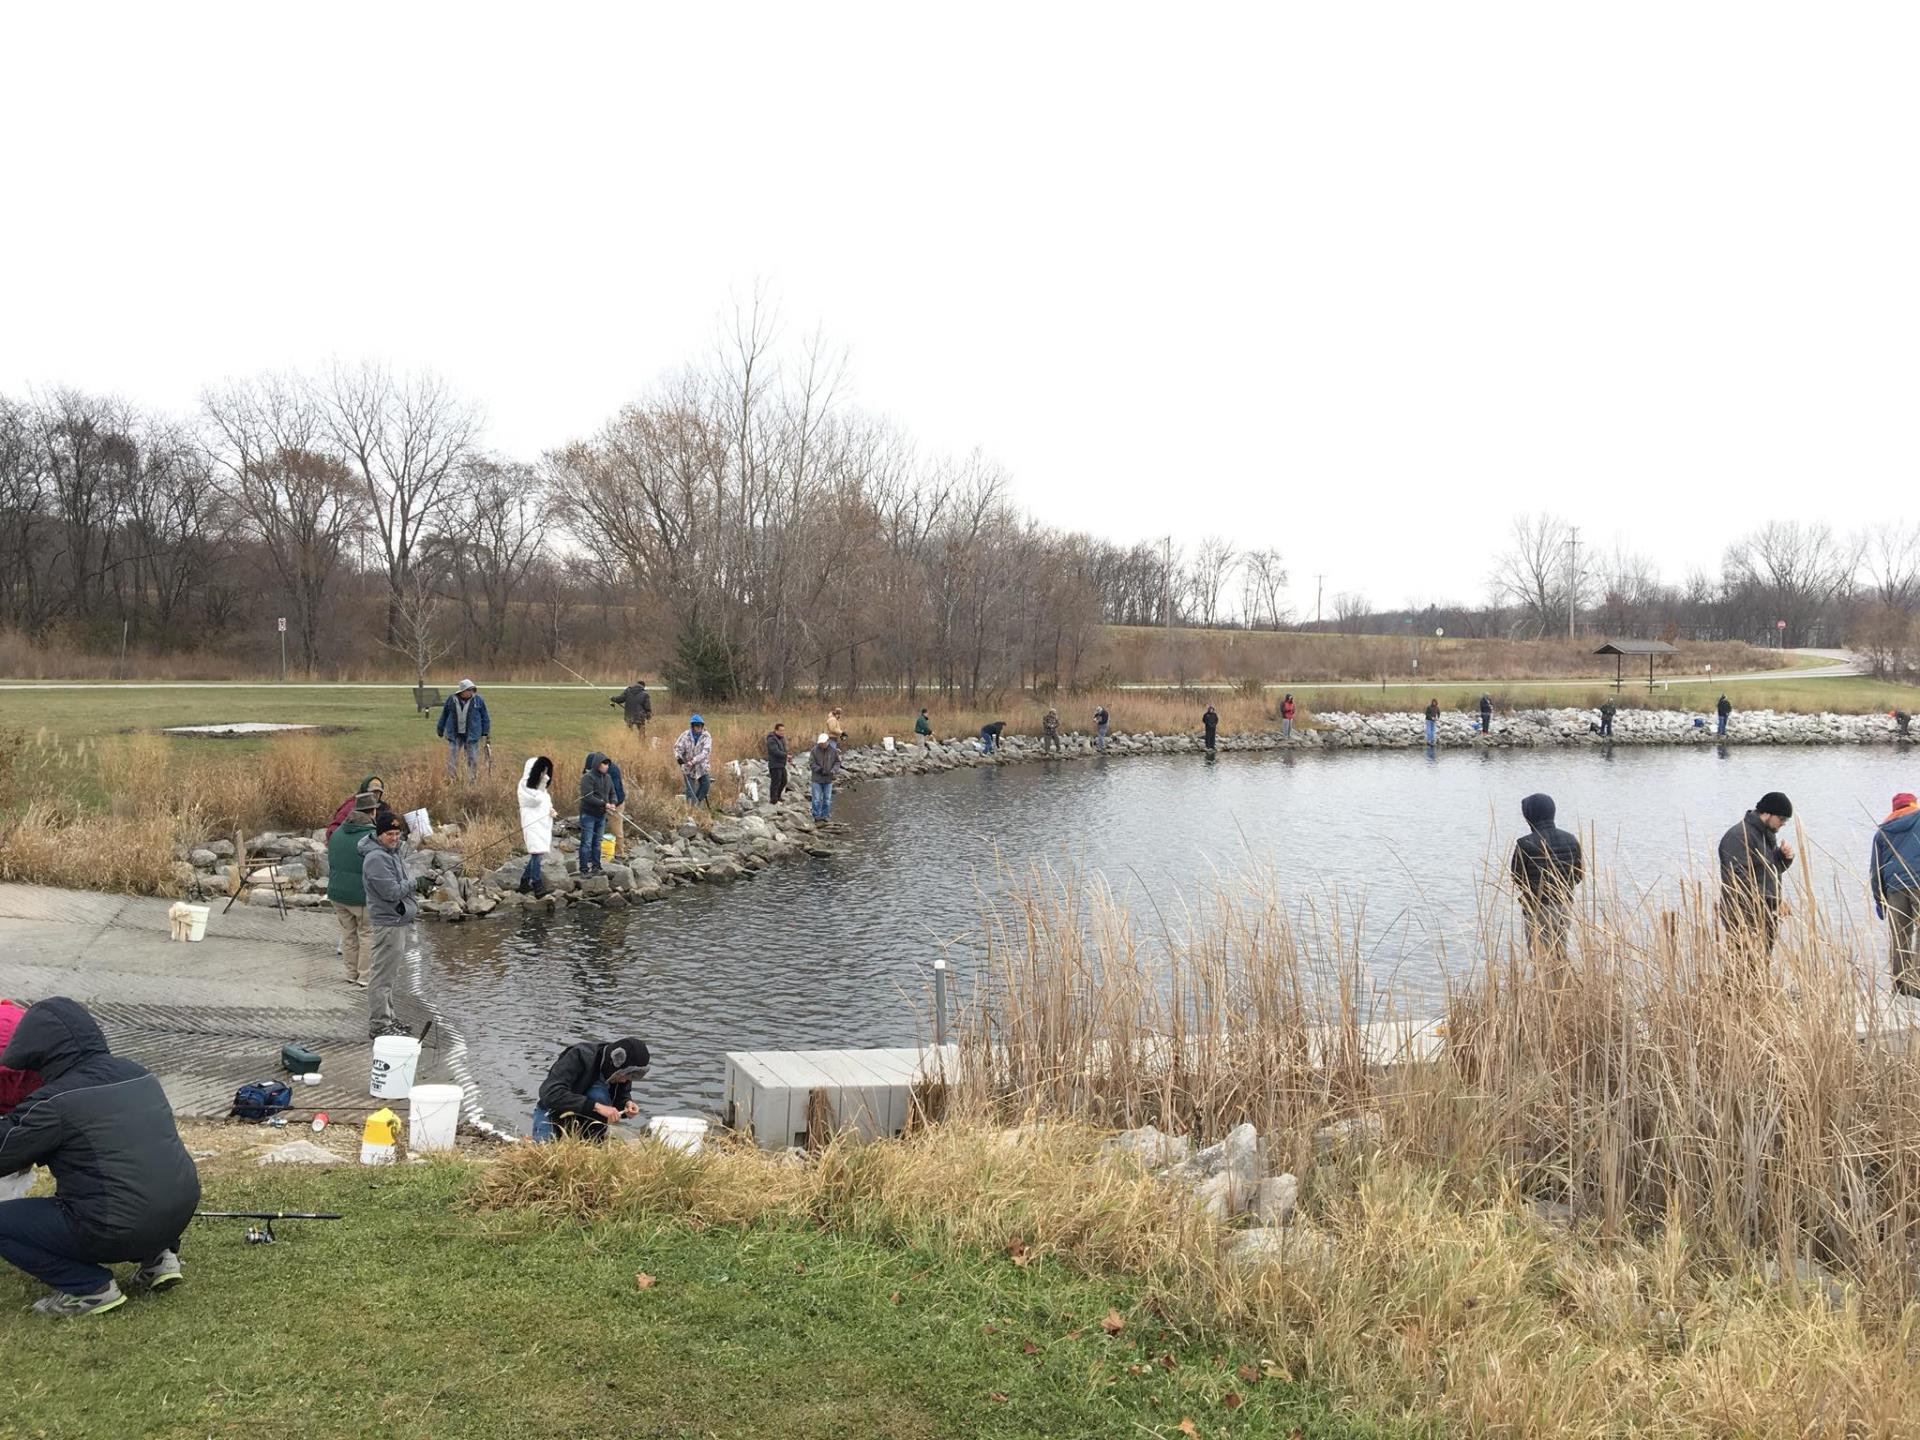 People fishing at Ada Hayden Heritage Park after Trout Stocking event in 2017